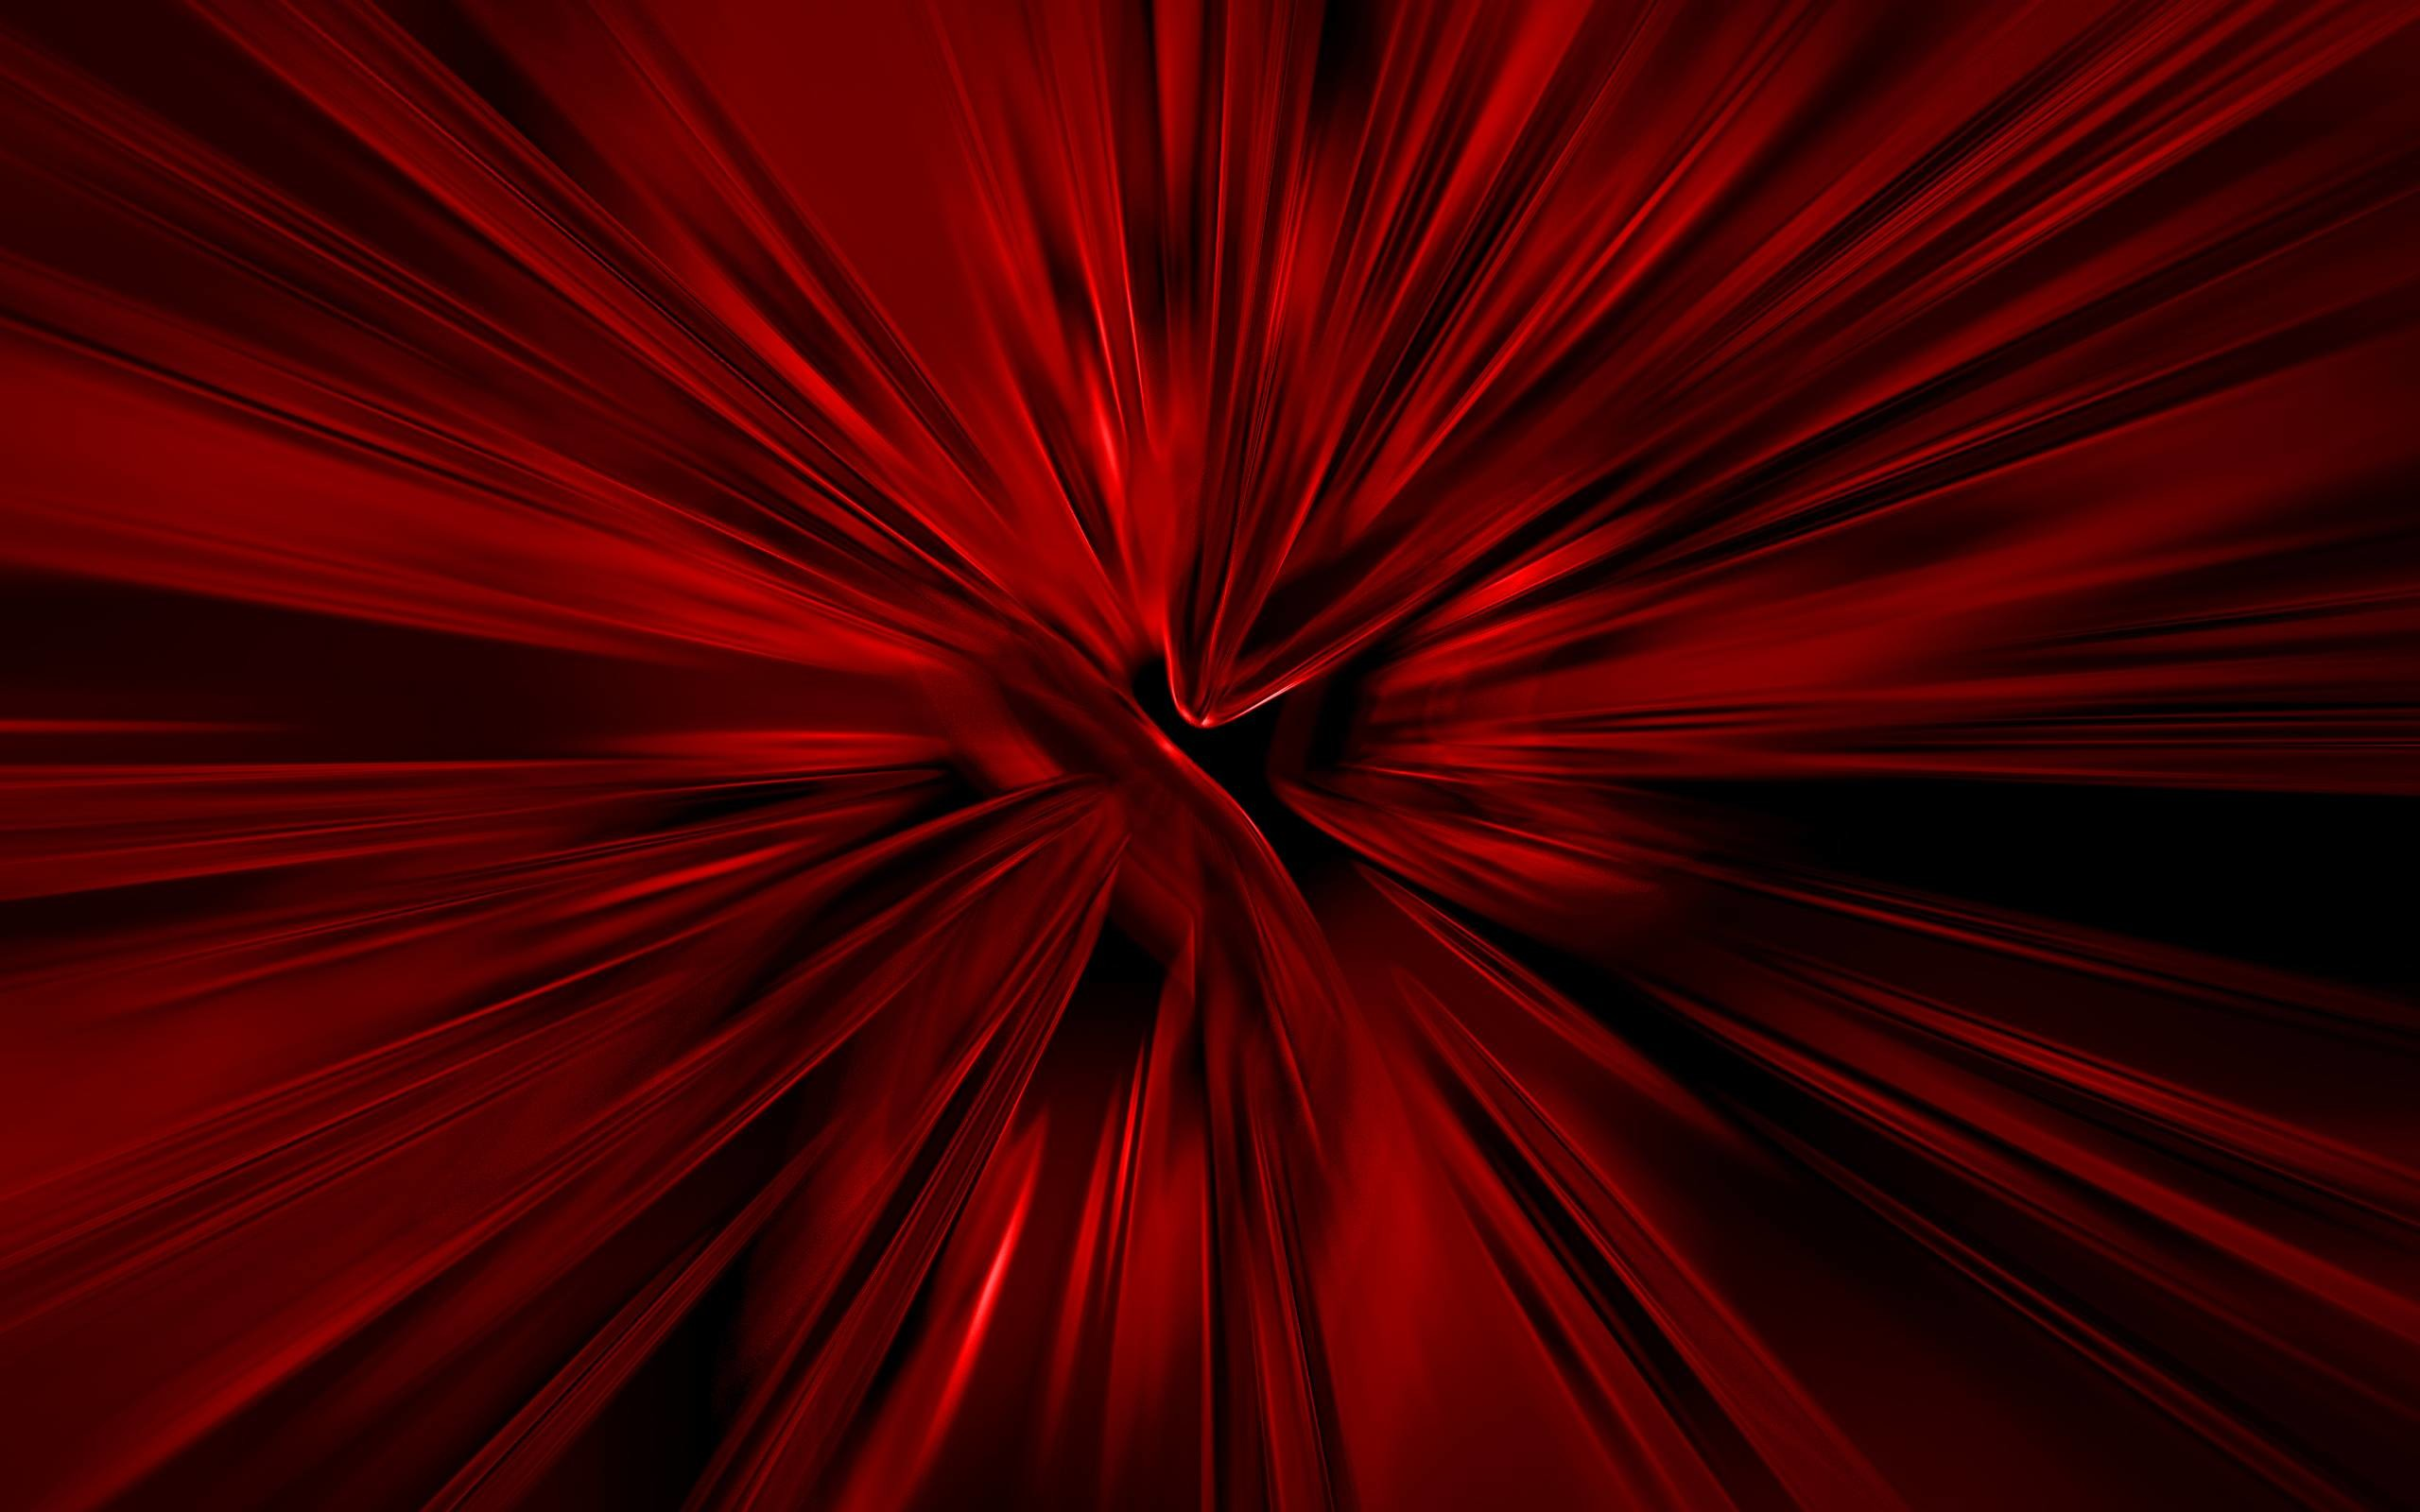 2560x1600 Red And Black Wallpaper 11 227544 High Definition Wallpapers .